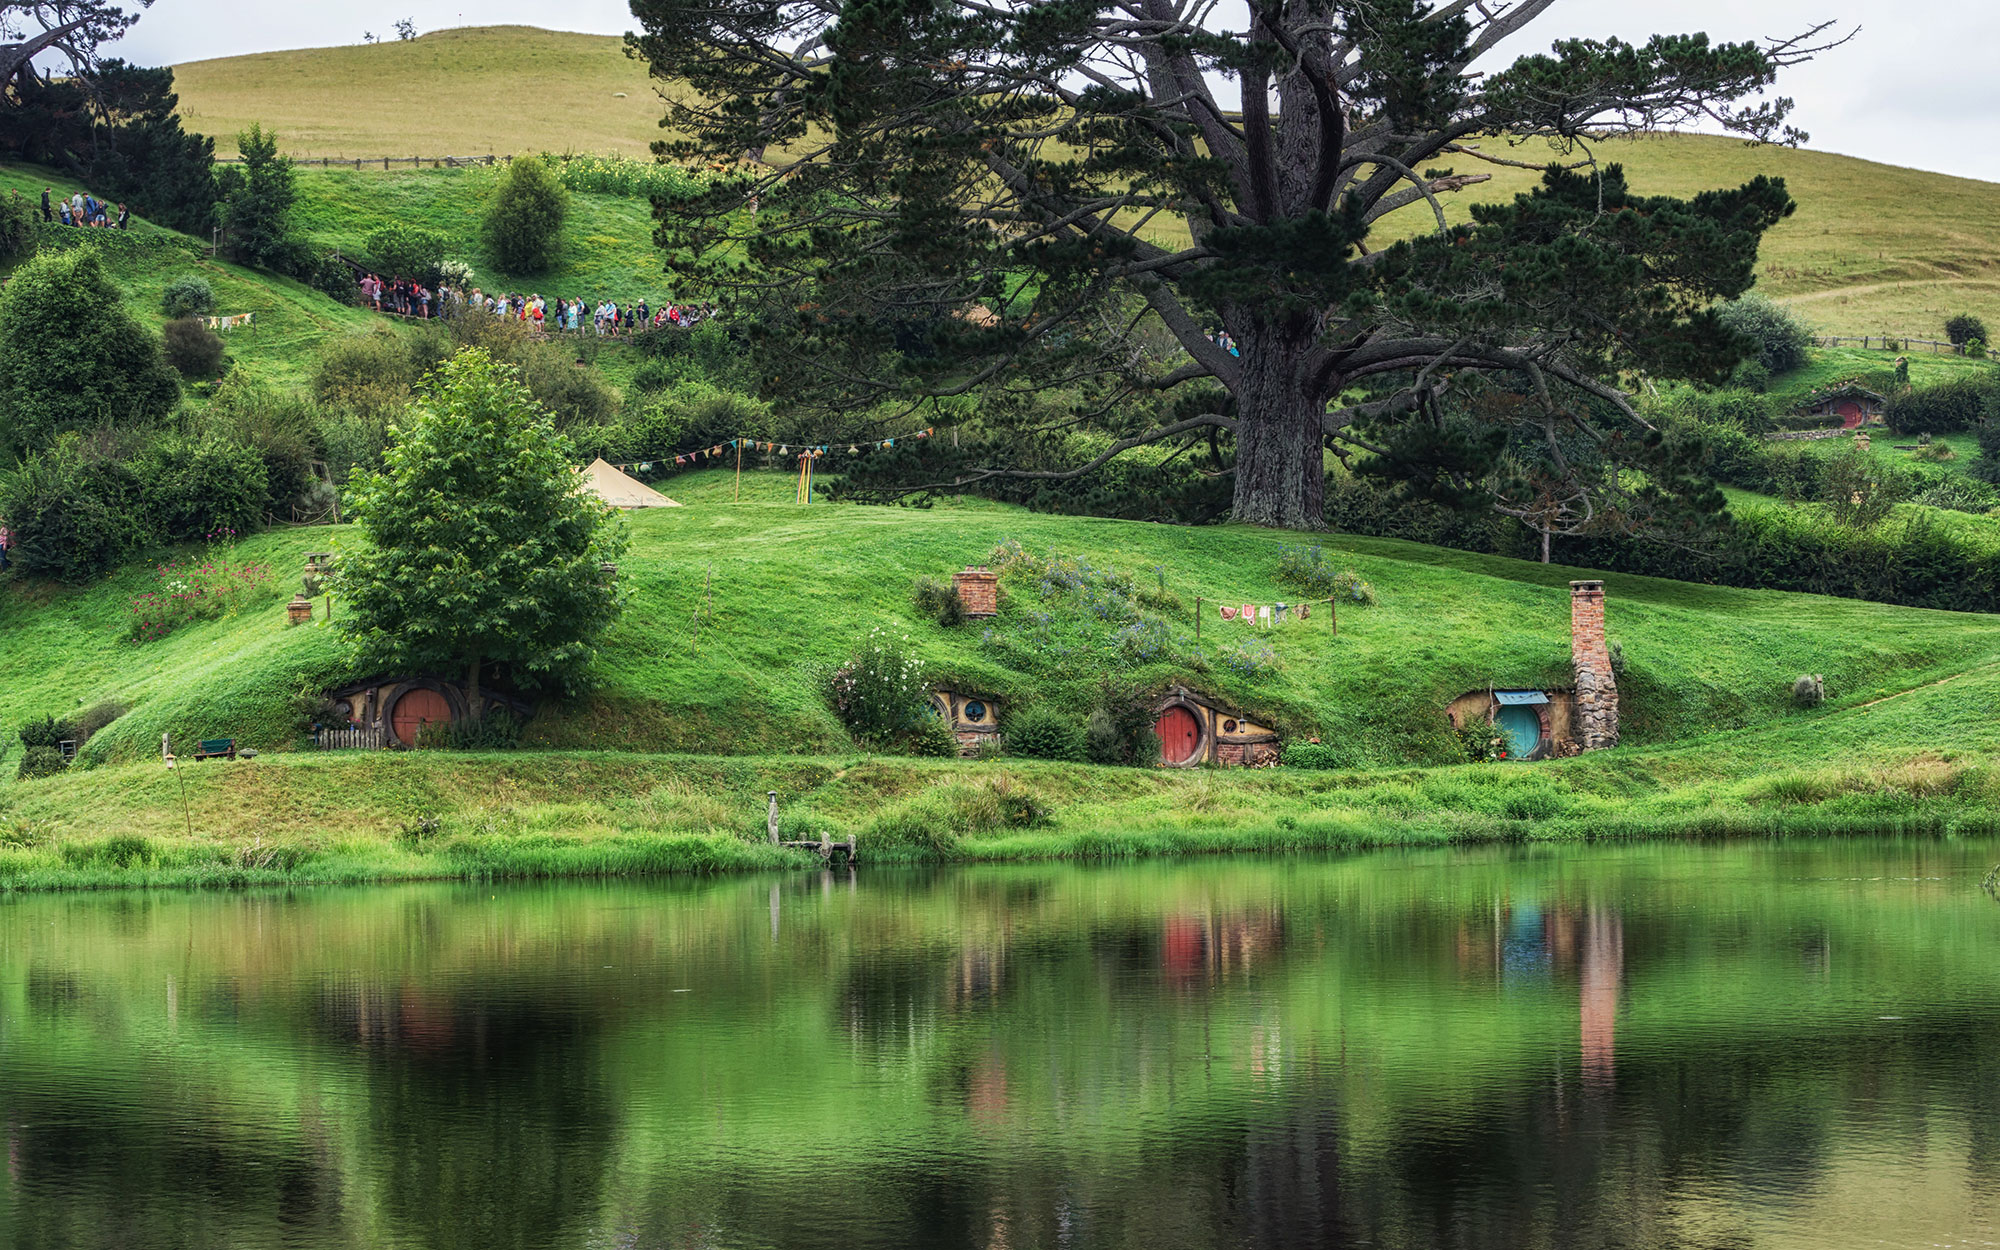 Abandoned Movie Sets You Can Still Visit: Lord of the Rings Hobbit Holes in Matamata, New Zealand